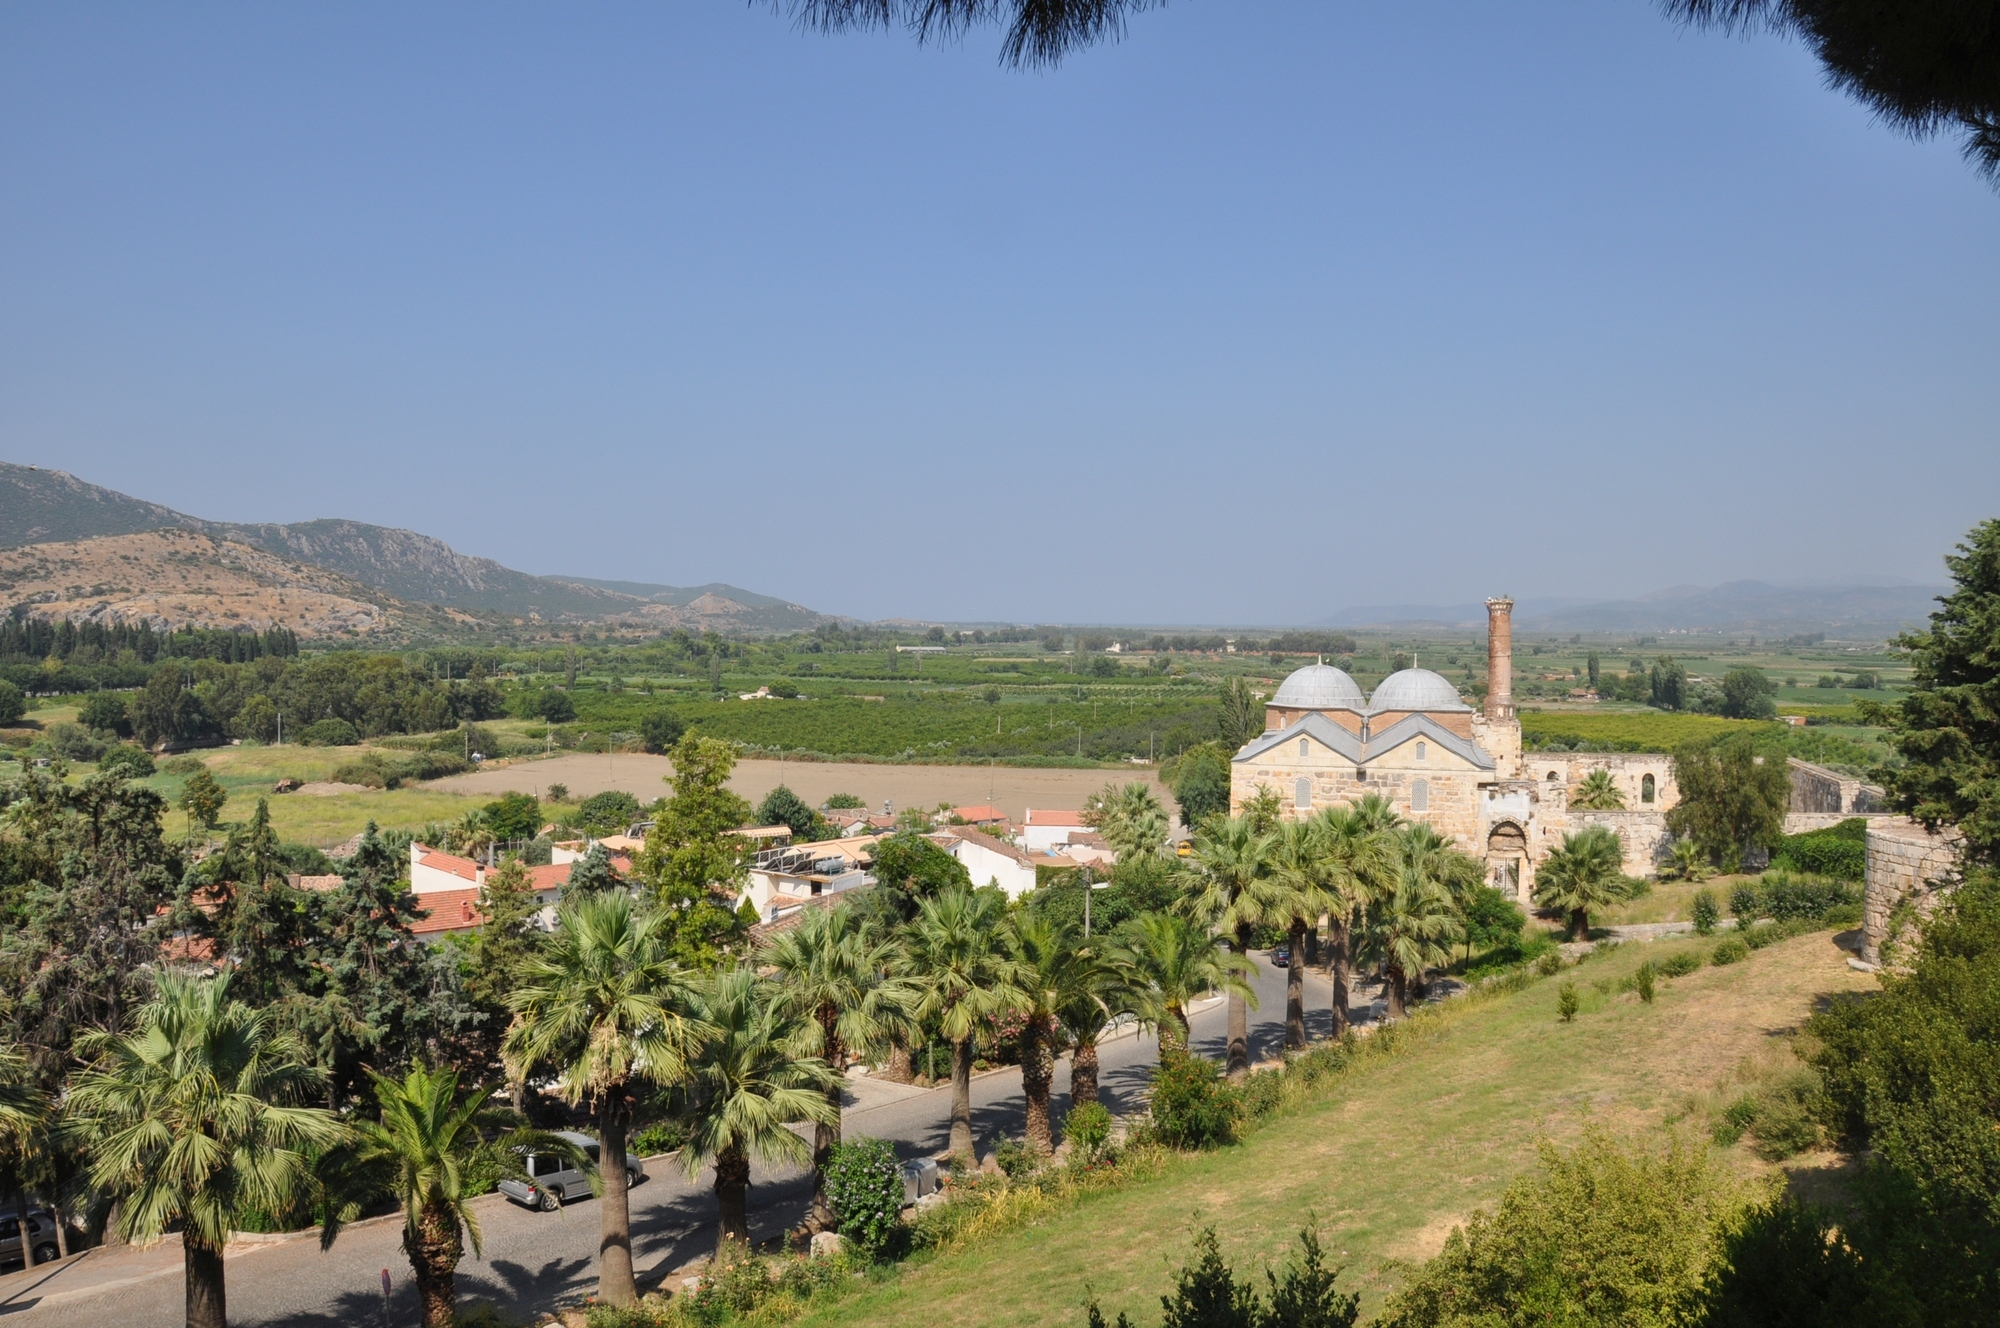 General view of İsa Bey Mosque from the Basilica of St. John